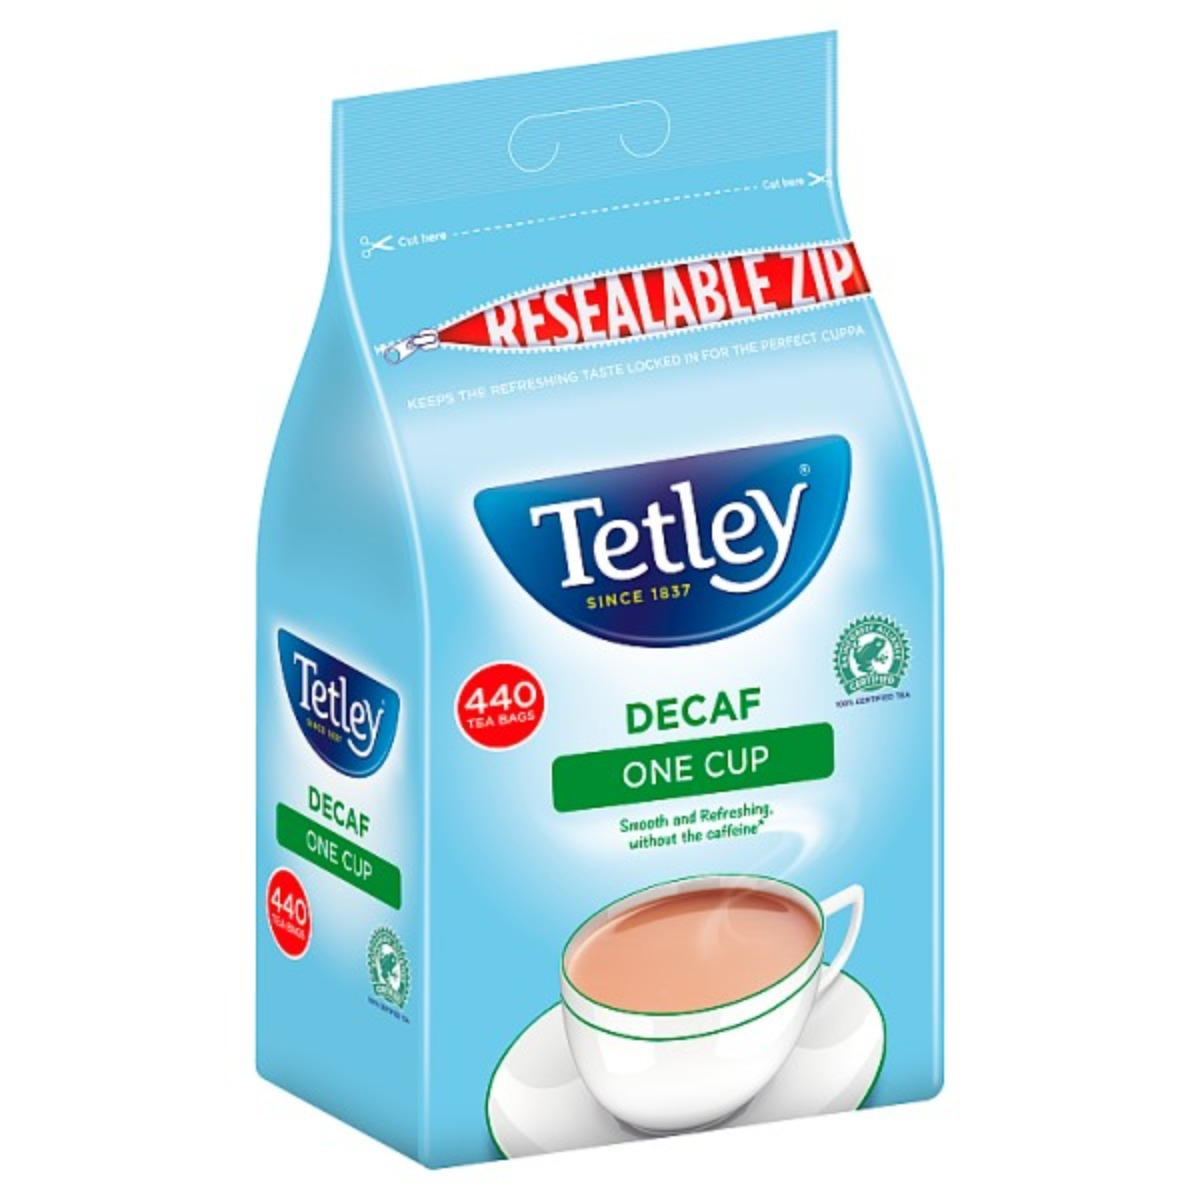 Tetley Decaf Tea Bags 1x440